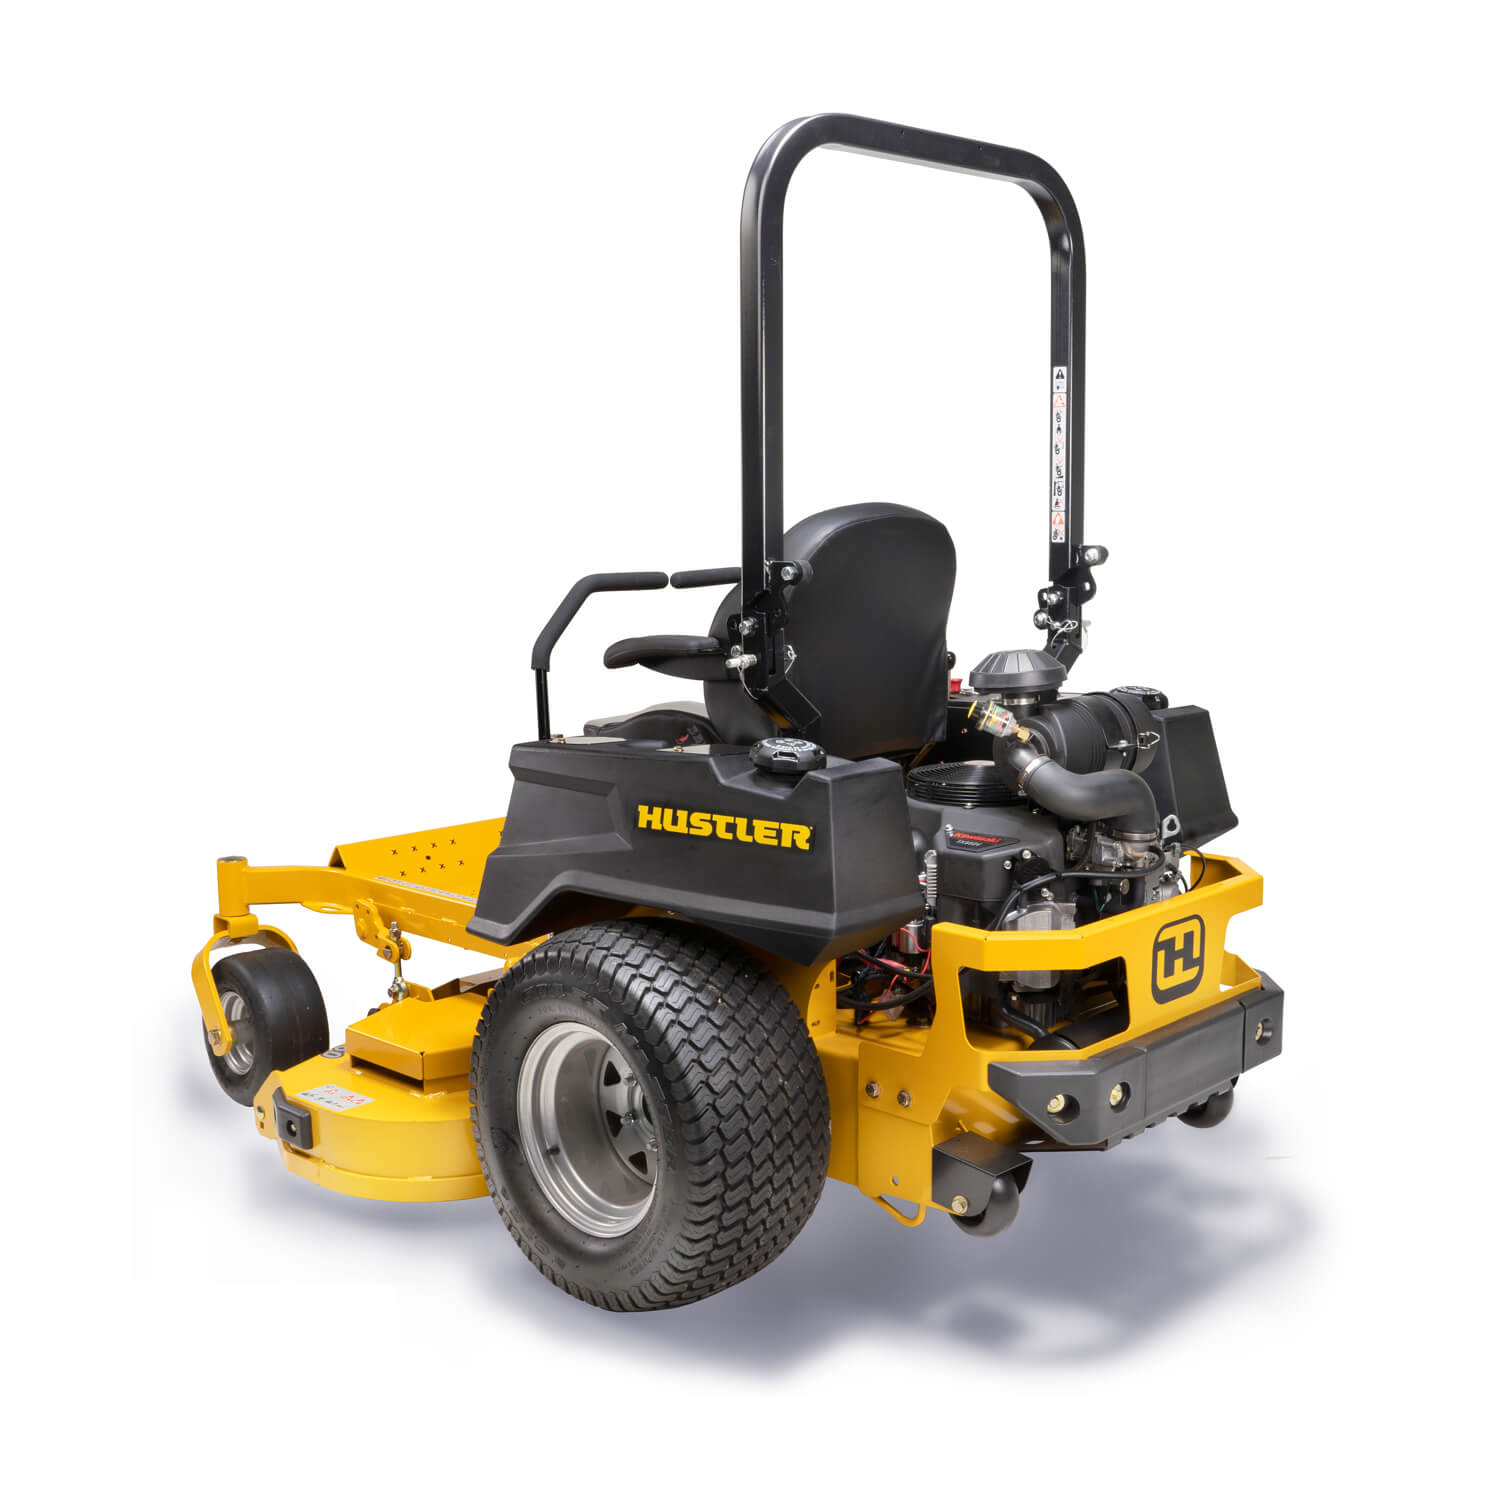 Image of the rear three quarters of a yellow zero-turn mower showing the trim side of the deck